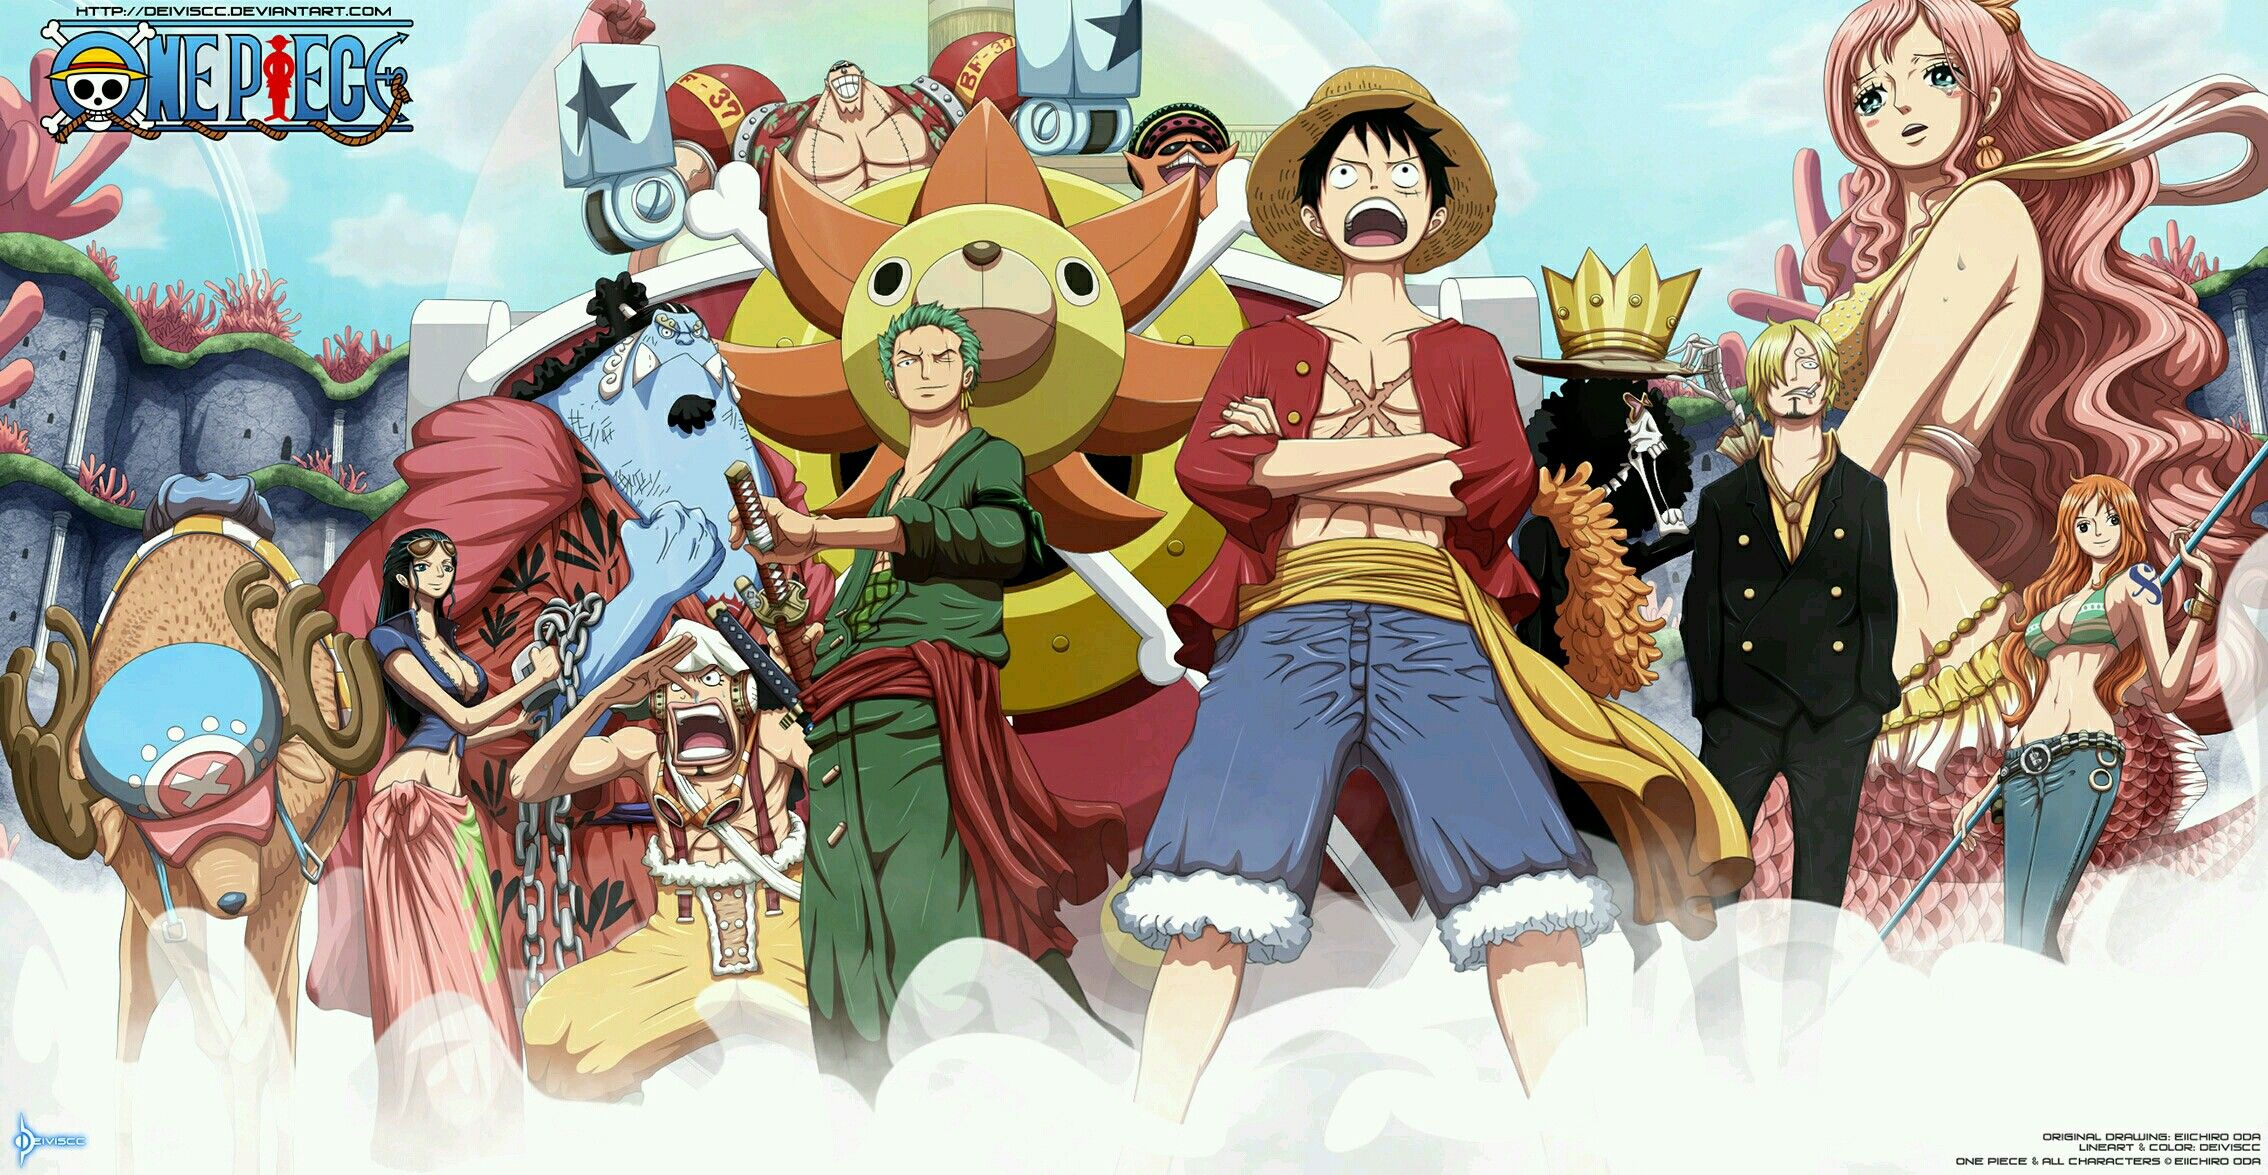 Pin by Art Alec on One Piece One piece episodes, Anime